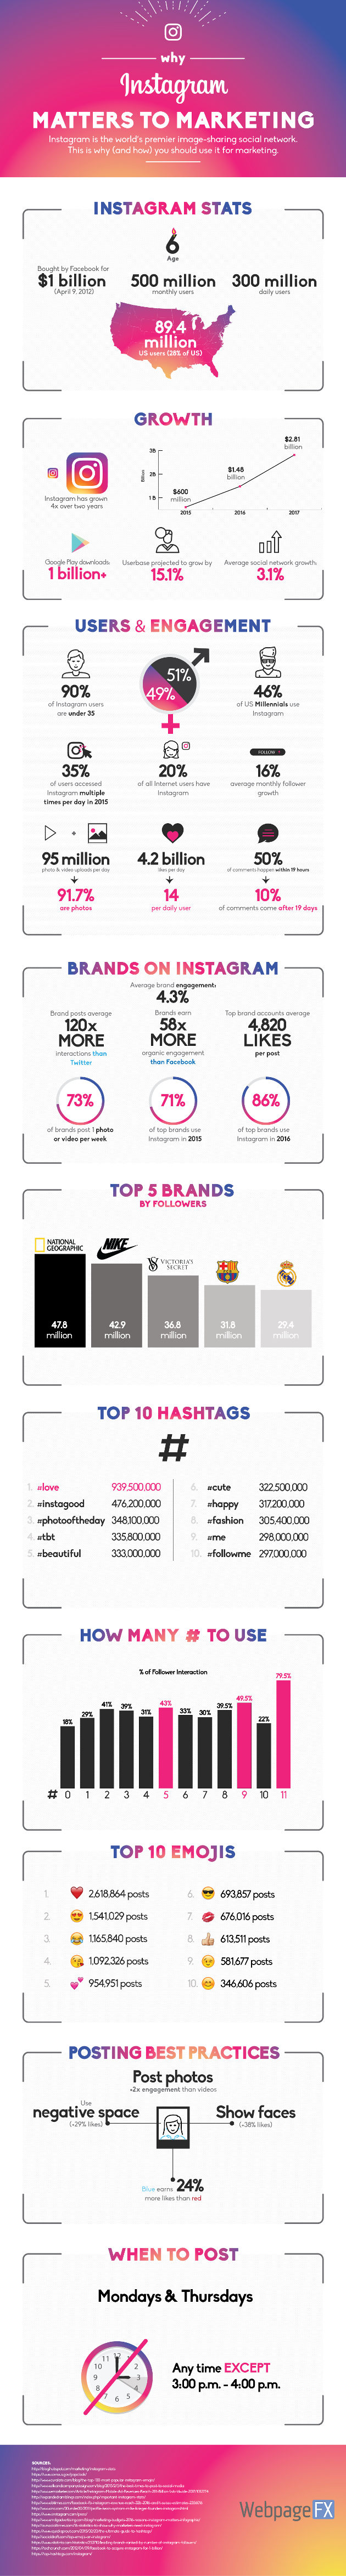 why+instagram+matters+to+marketing.jpeg